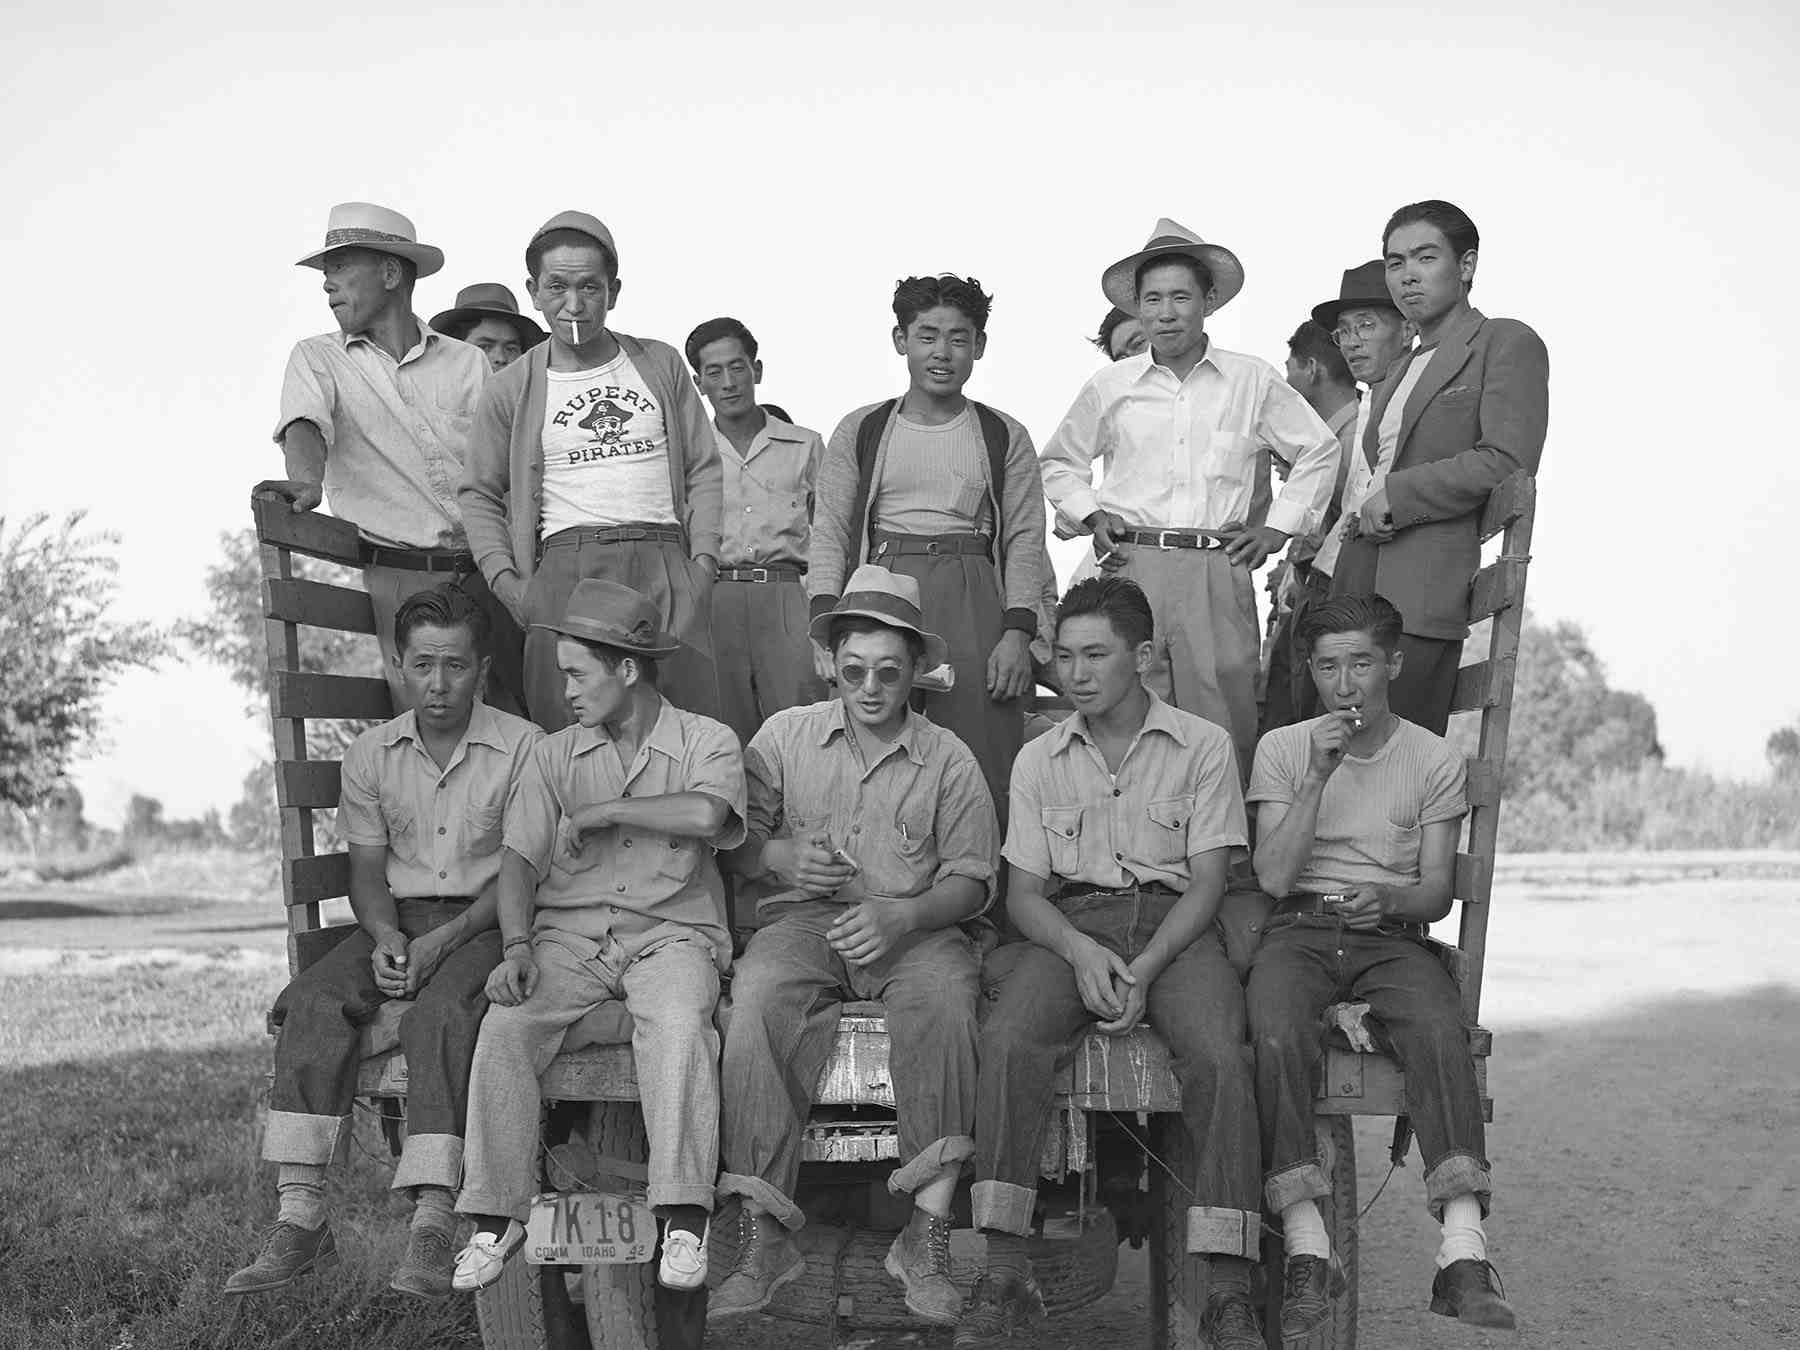 Many of the single men and families came to the Rupert, Idaho, camp from Minidoka, Heart Mountain, Manzanar, and Poston. The seasonal leave program drew a mix of people, some with previous agricultural experience and others without. (Library of Congress, Prints & Photographs Division, FSA-OWI Collection, LC-USF34-073890-D)